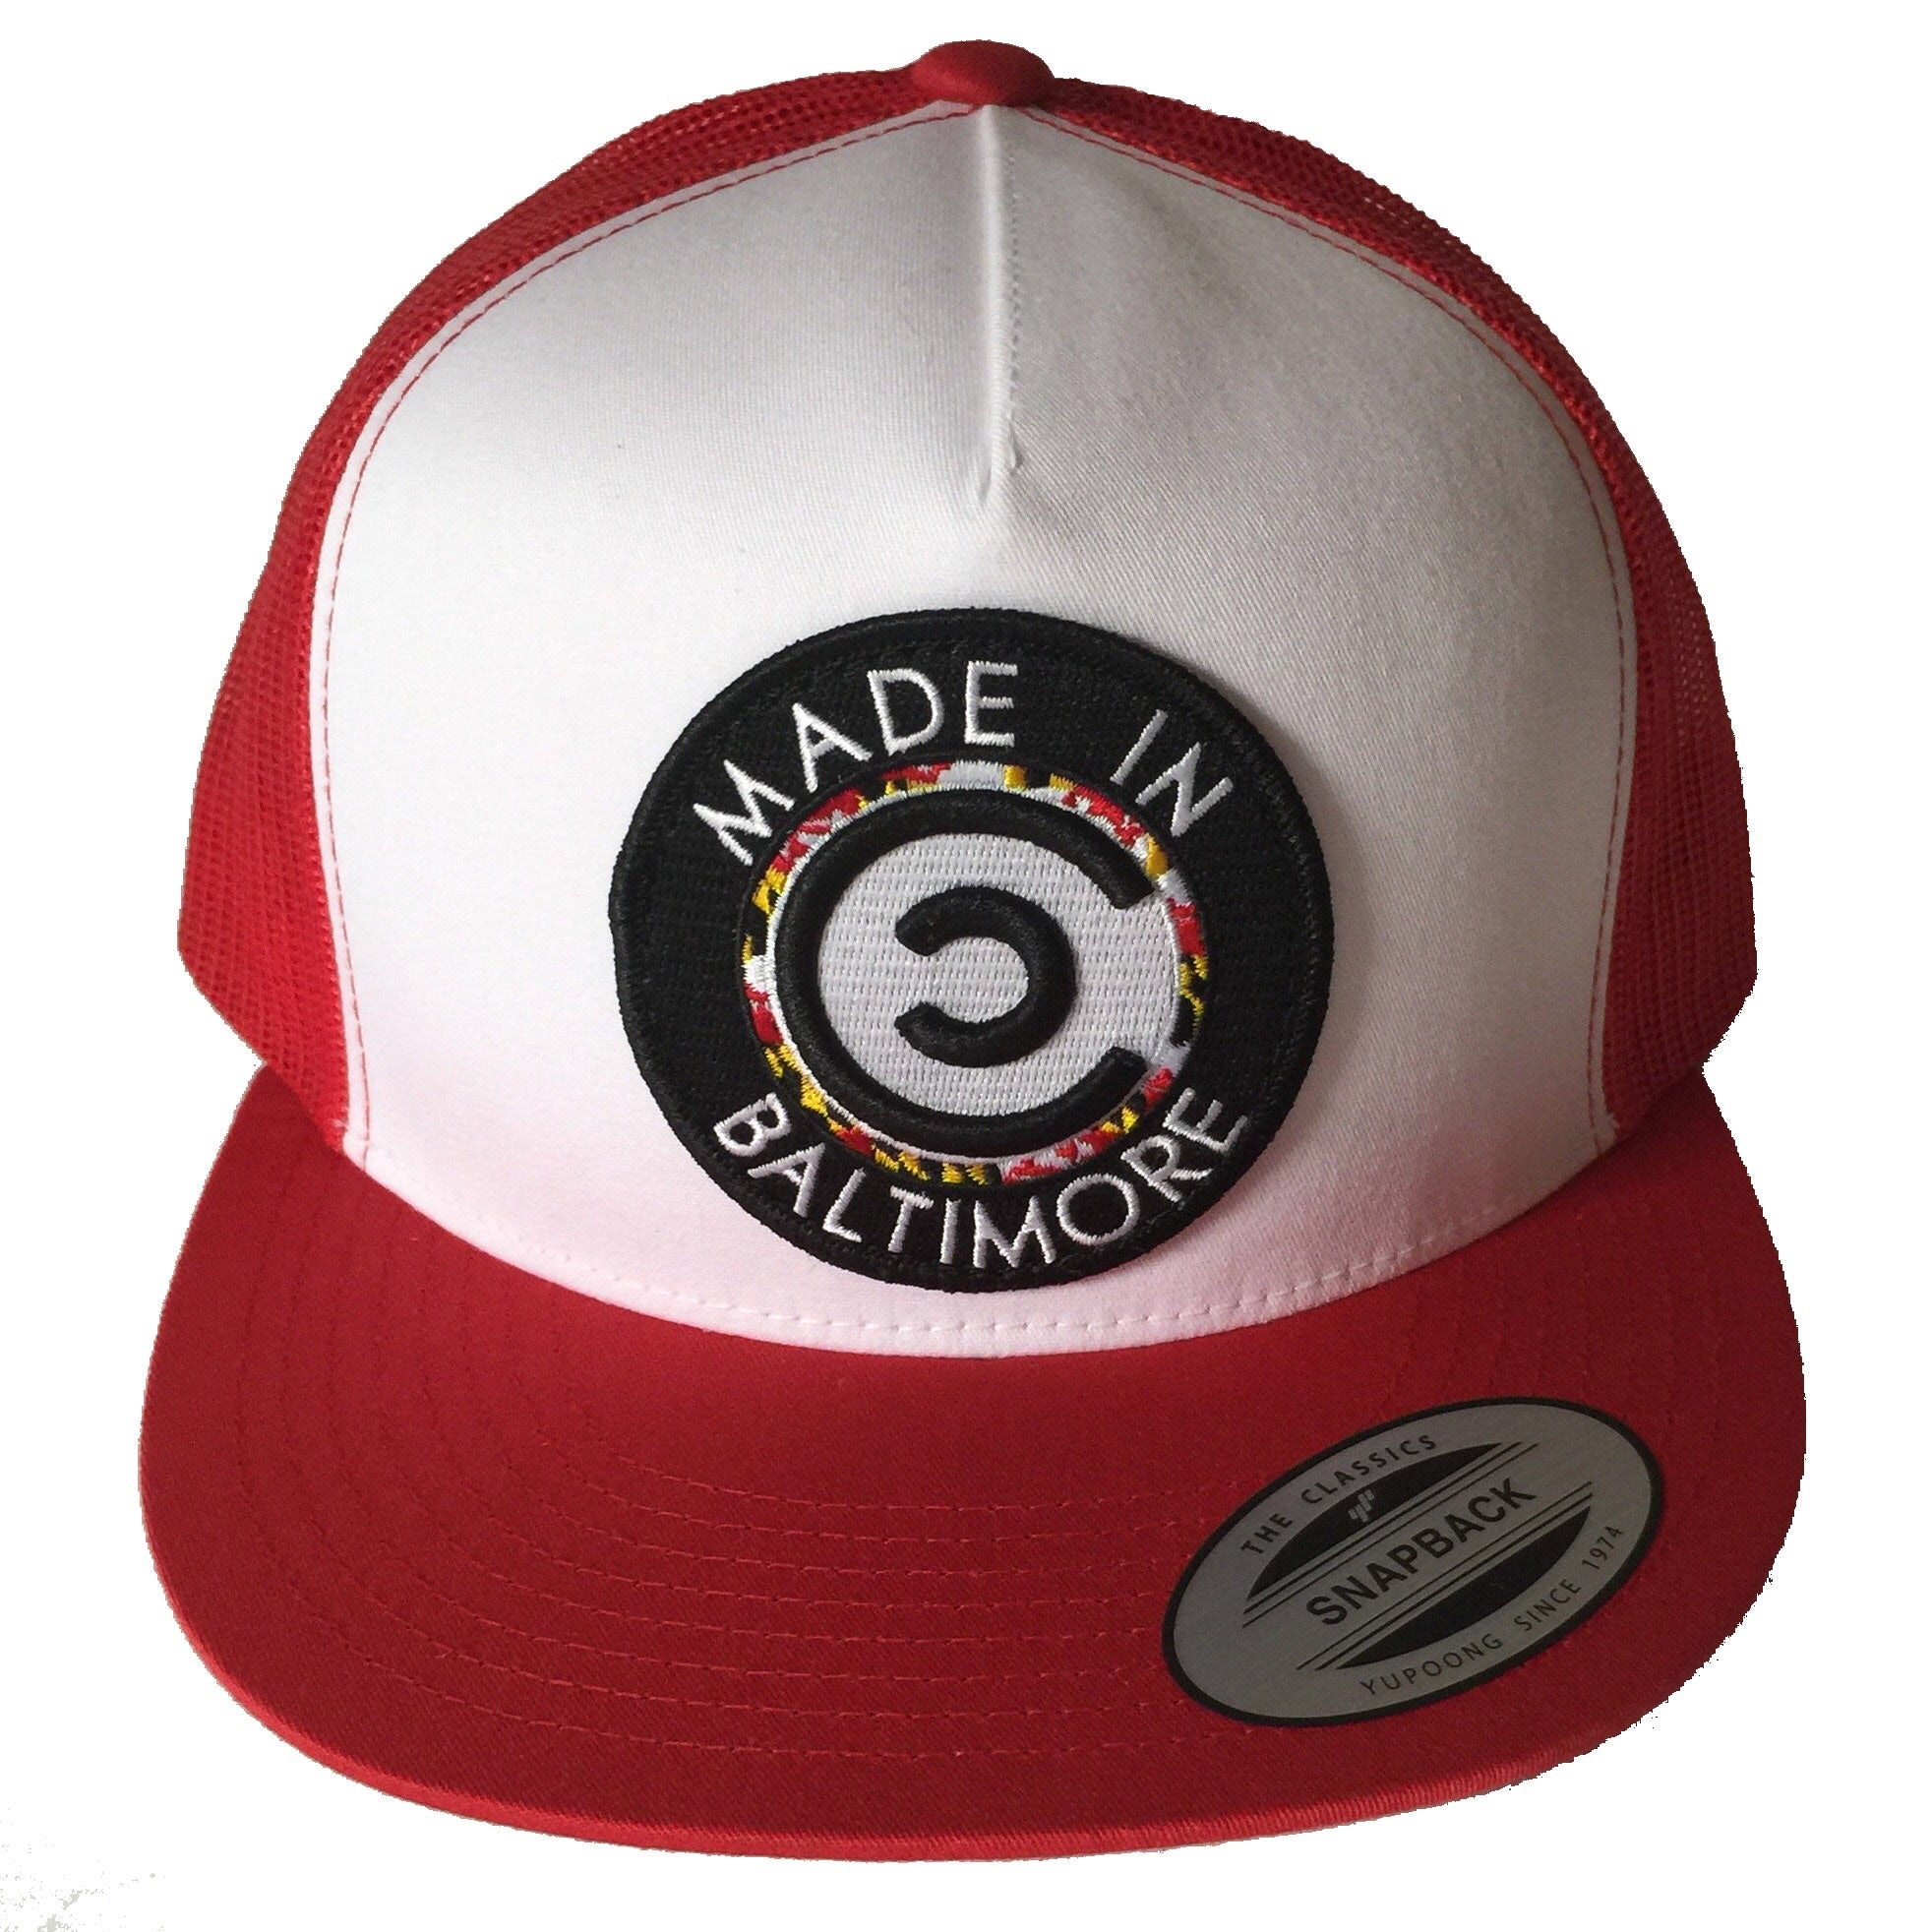 Red & White Made In Baltimore SnapBack